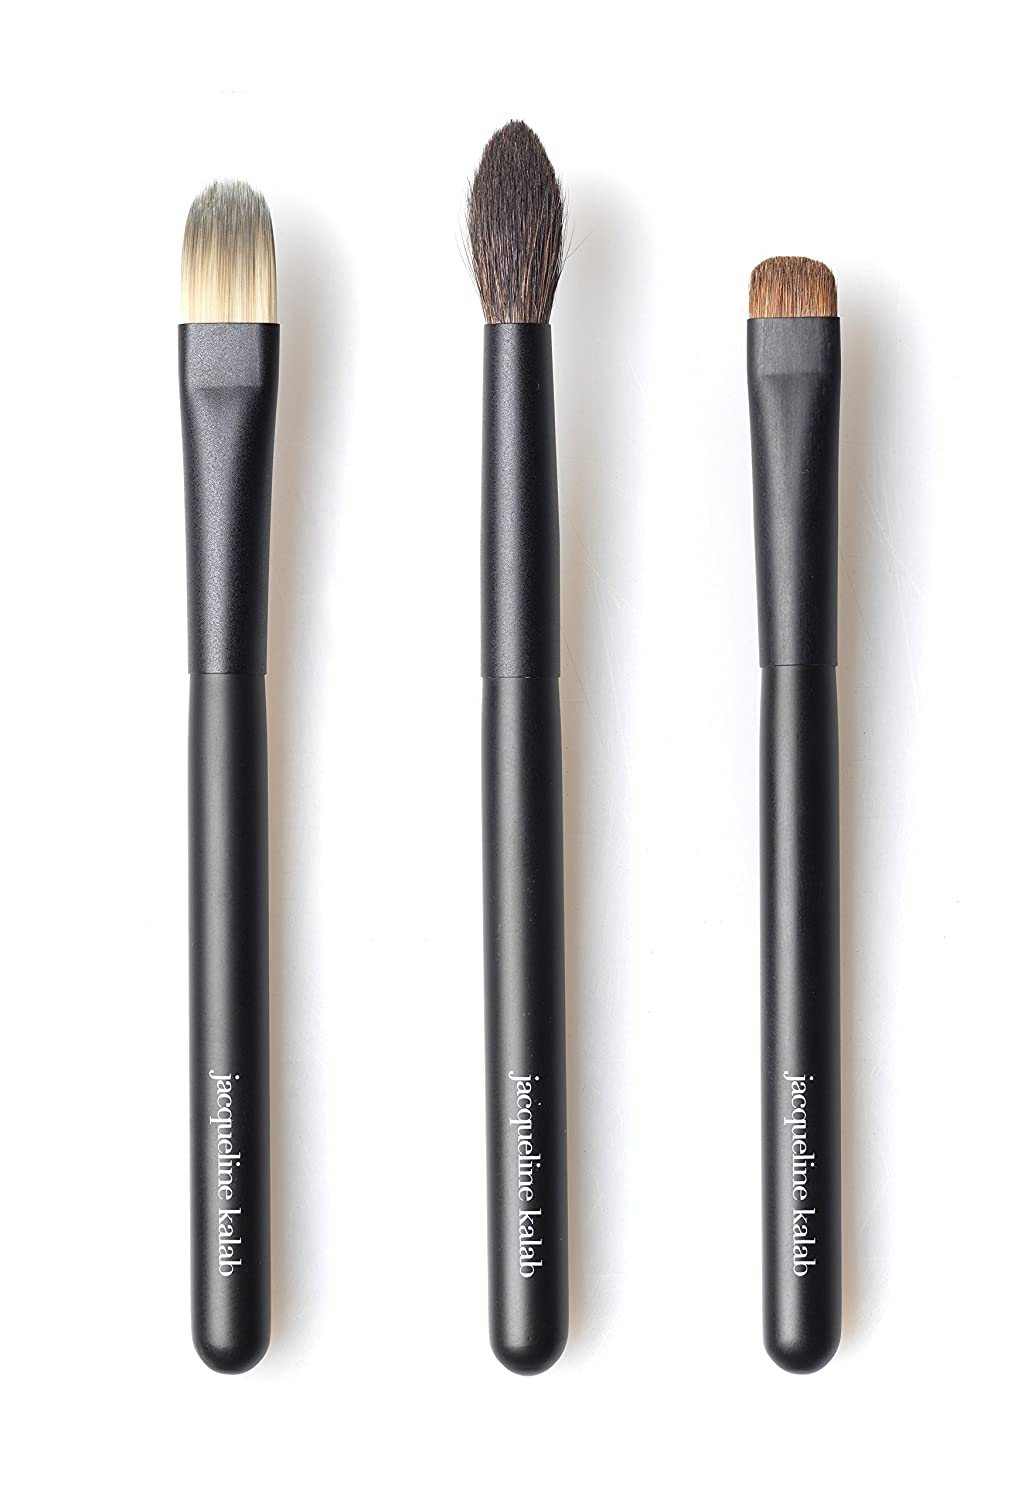 The Perfect Eye Brush Set, by Jacqueline Kalab - Self-Makeup Handle Length - 4.9in